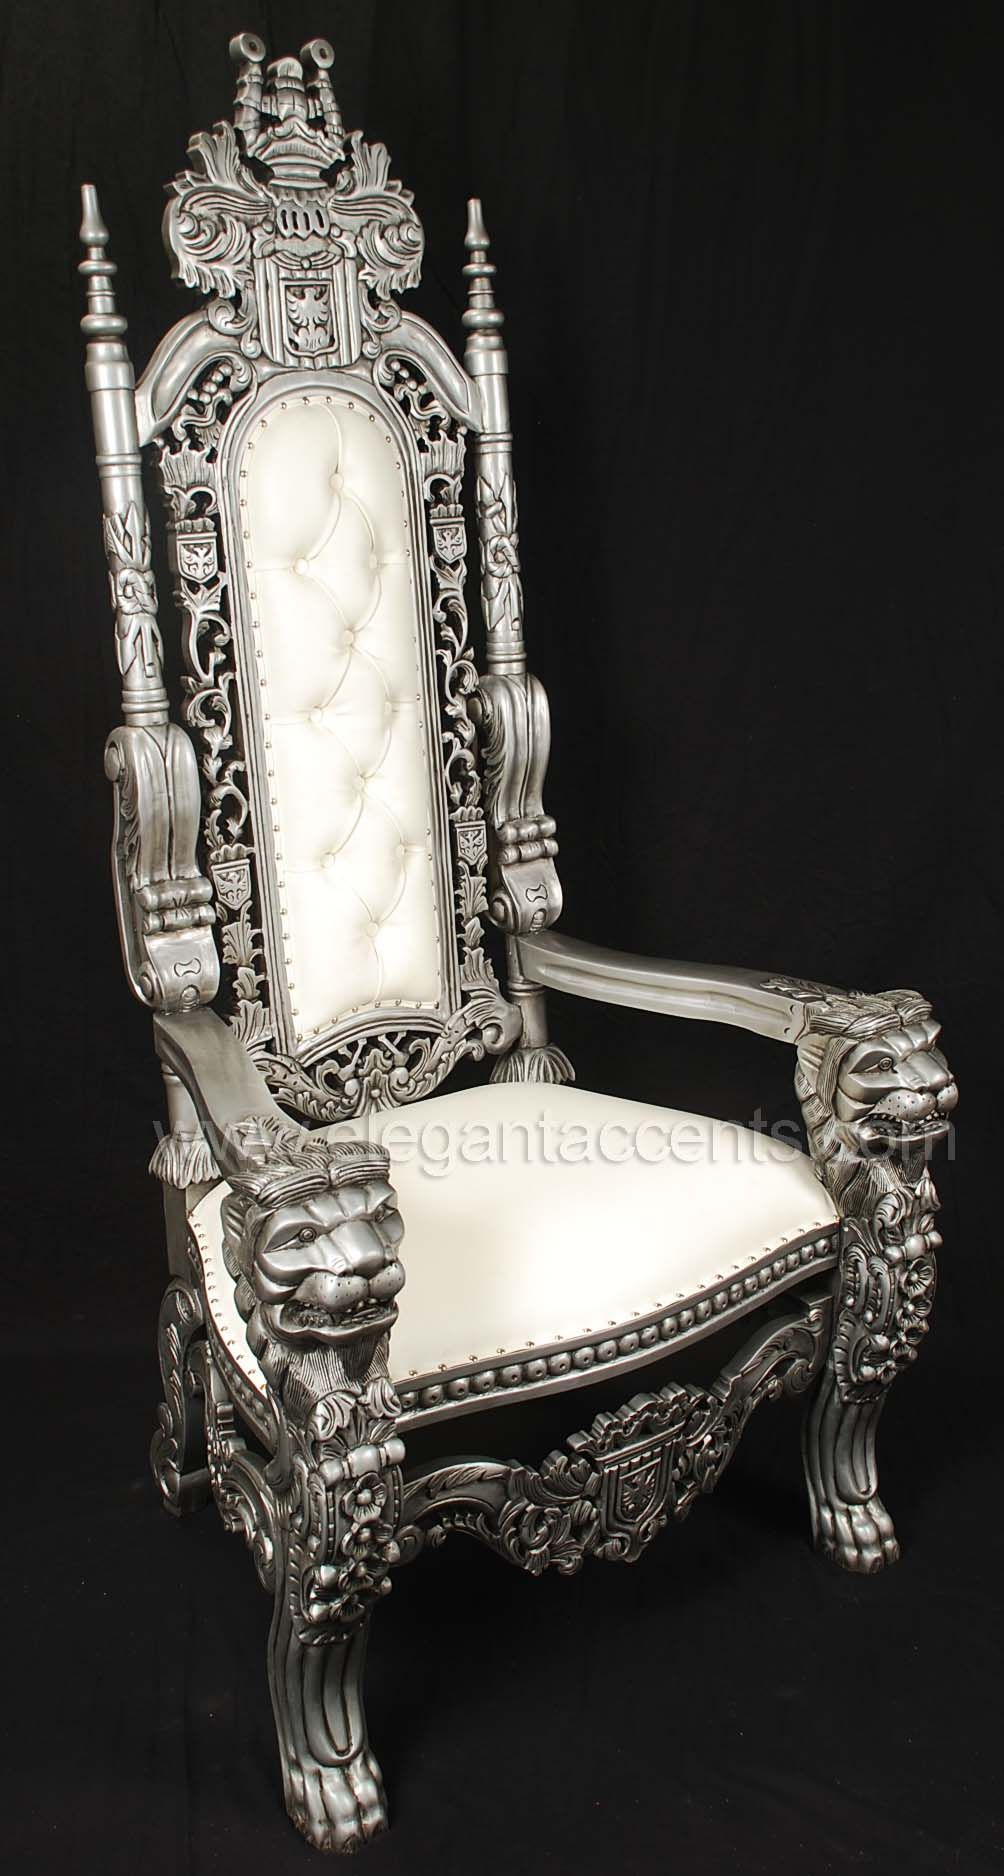 King Lion Throne Chair 995 Distressed Silver Finish